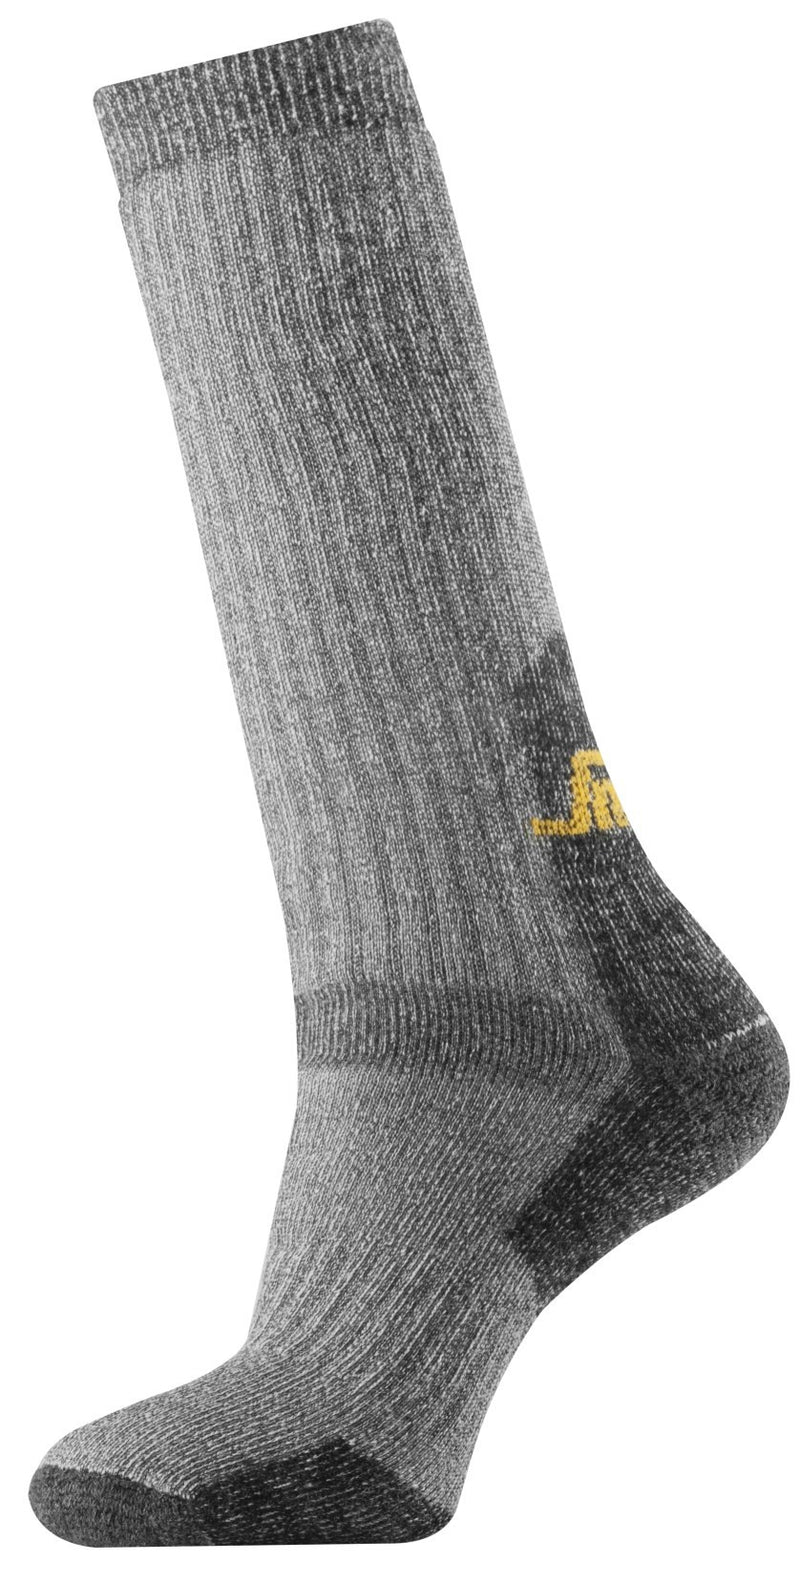 Snickers 9210 High Heavy Wool Sock (De warmste) - Snickers Werkkledij